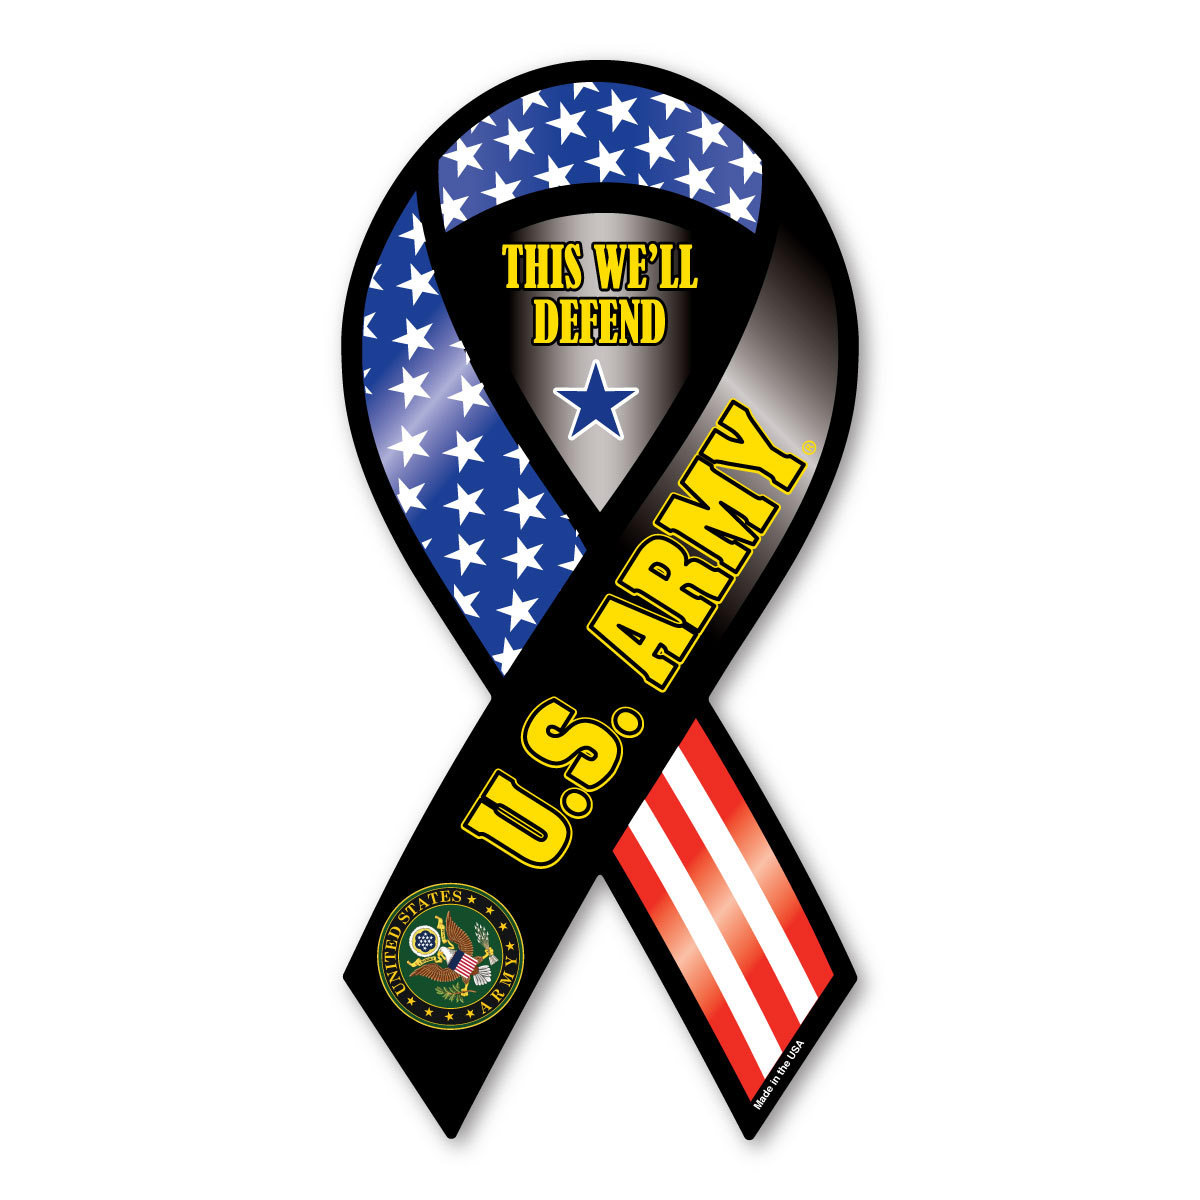 Best Military Branch To Join >> U.S. Army Ribbon Magnet- This Well Defend